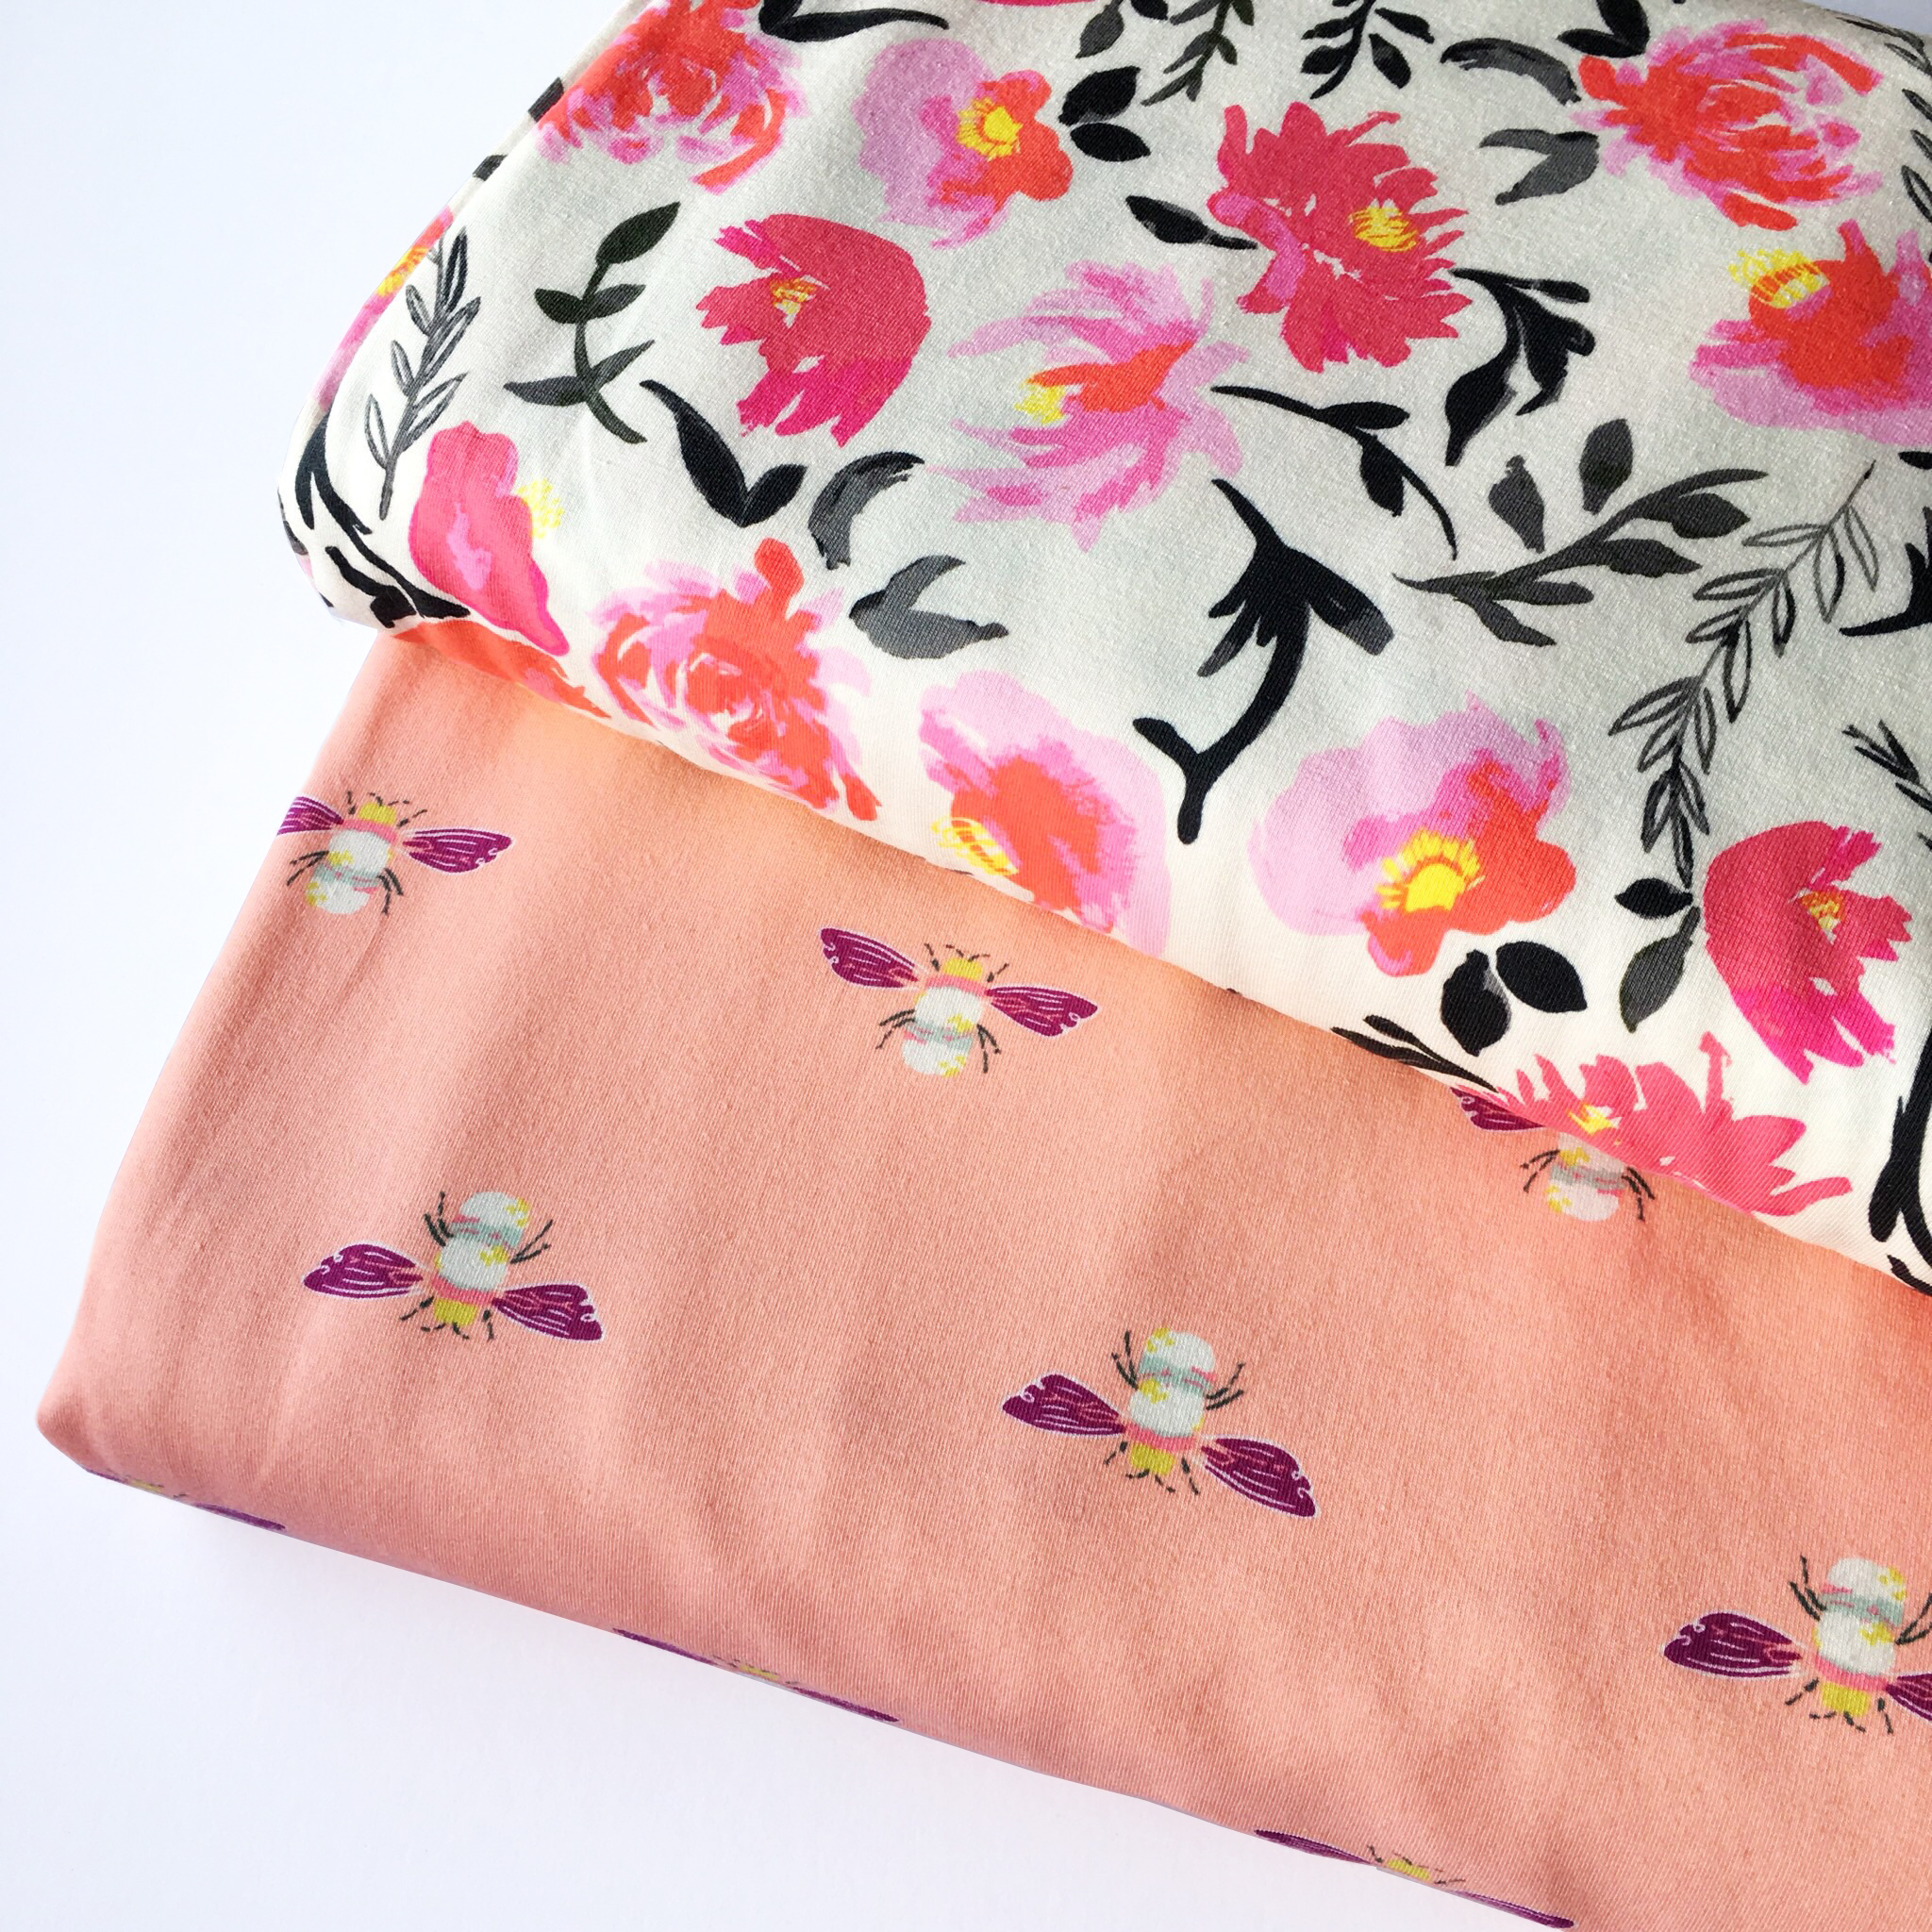 Shop for jersey fabric at The Fabric Fox